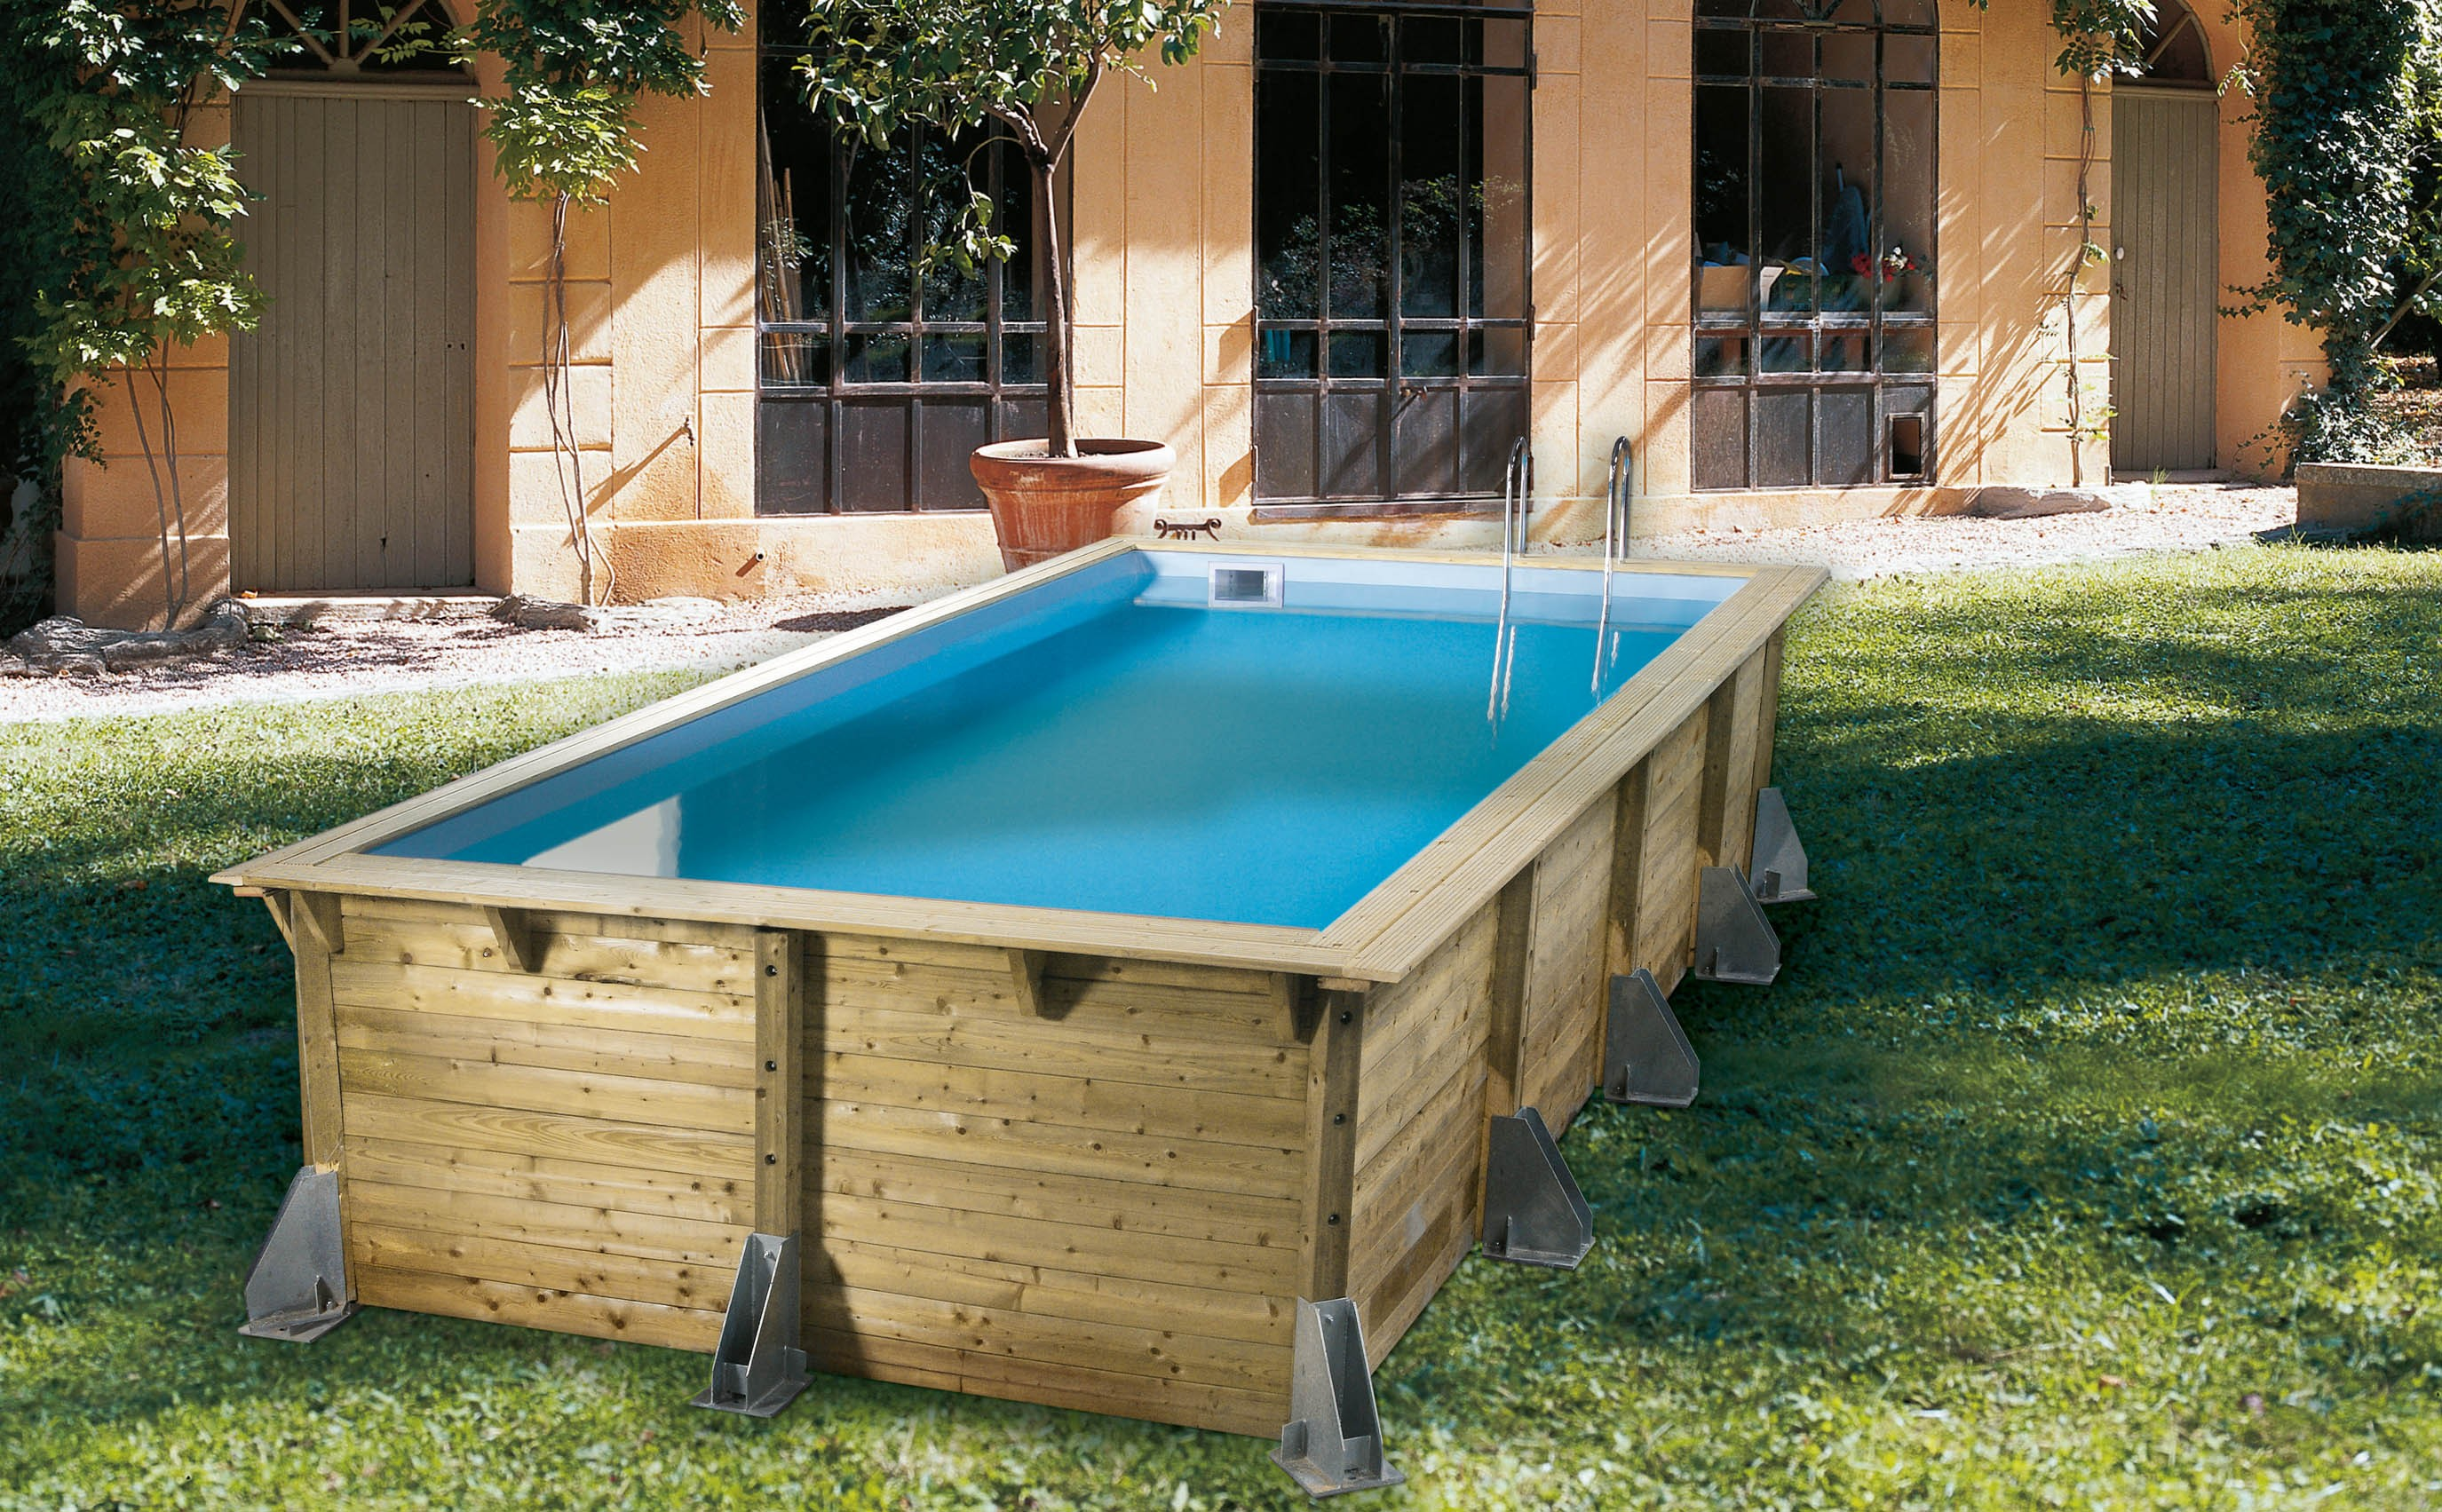 Piscine rectangulaire hors sol for Piscine autoportante en bois